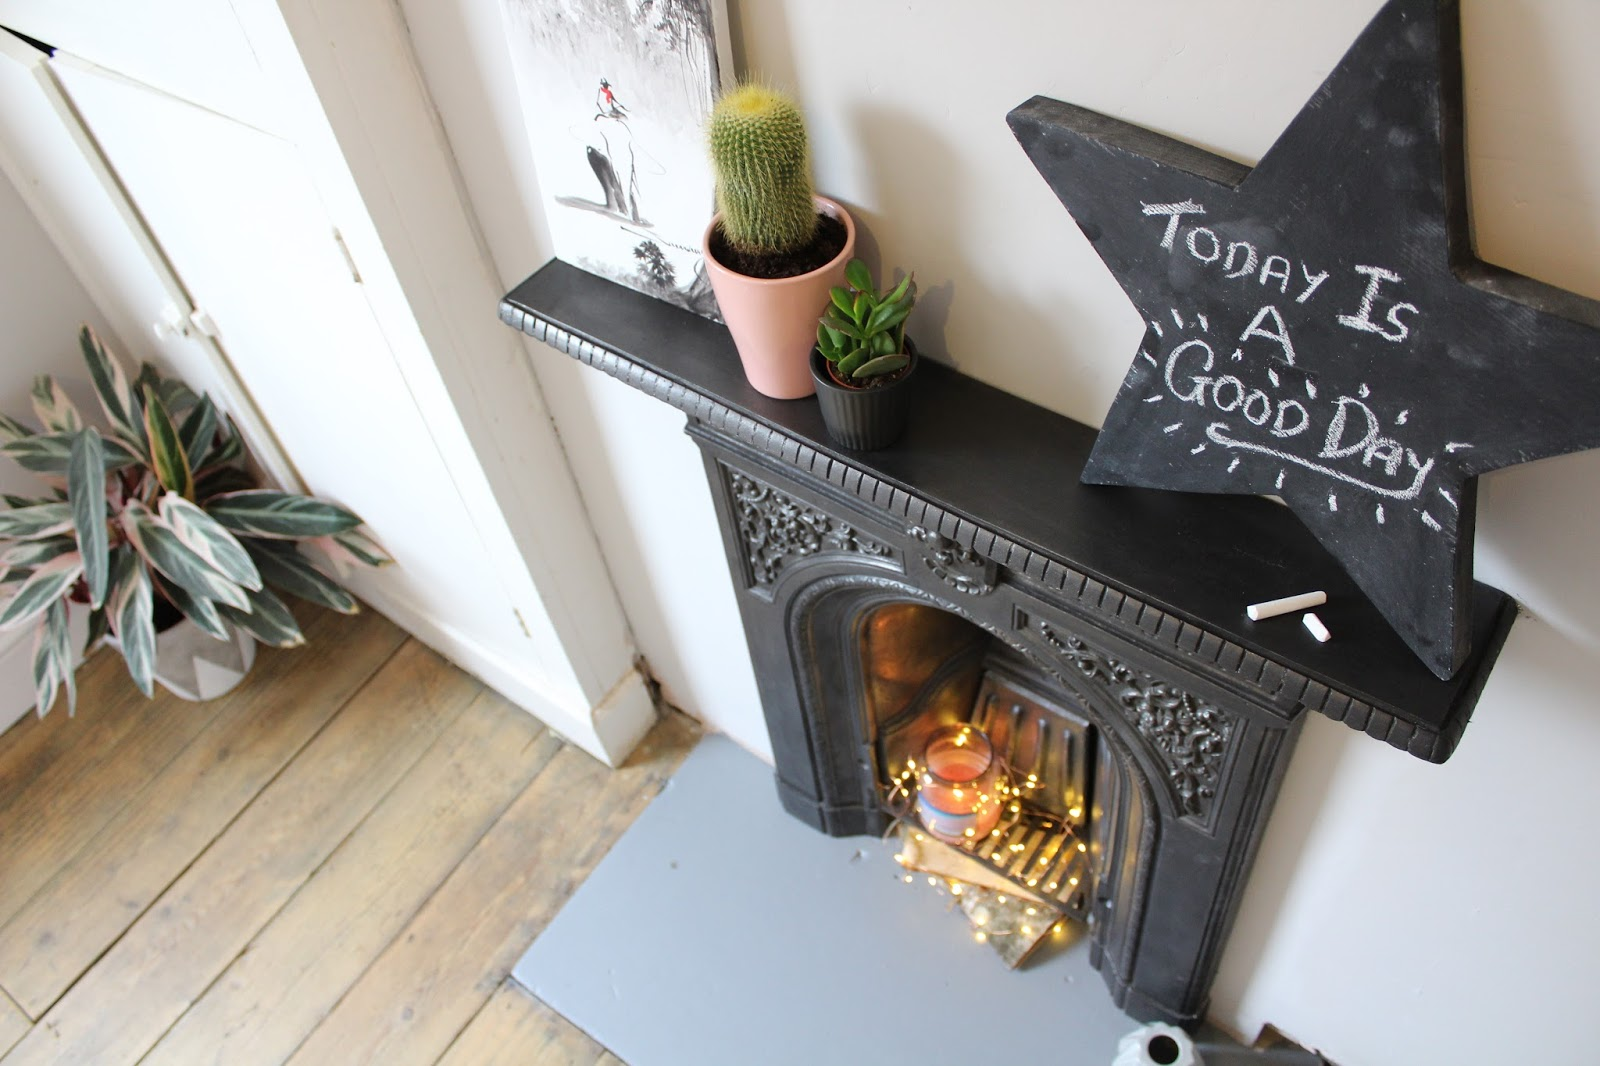 Painting The Hearth Victorian Fireplace Reveal Kezzabeth Diy Renovation Blog